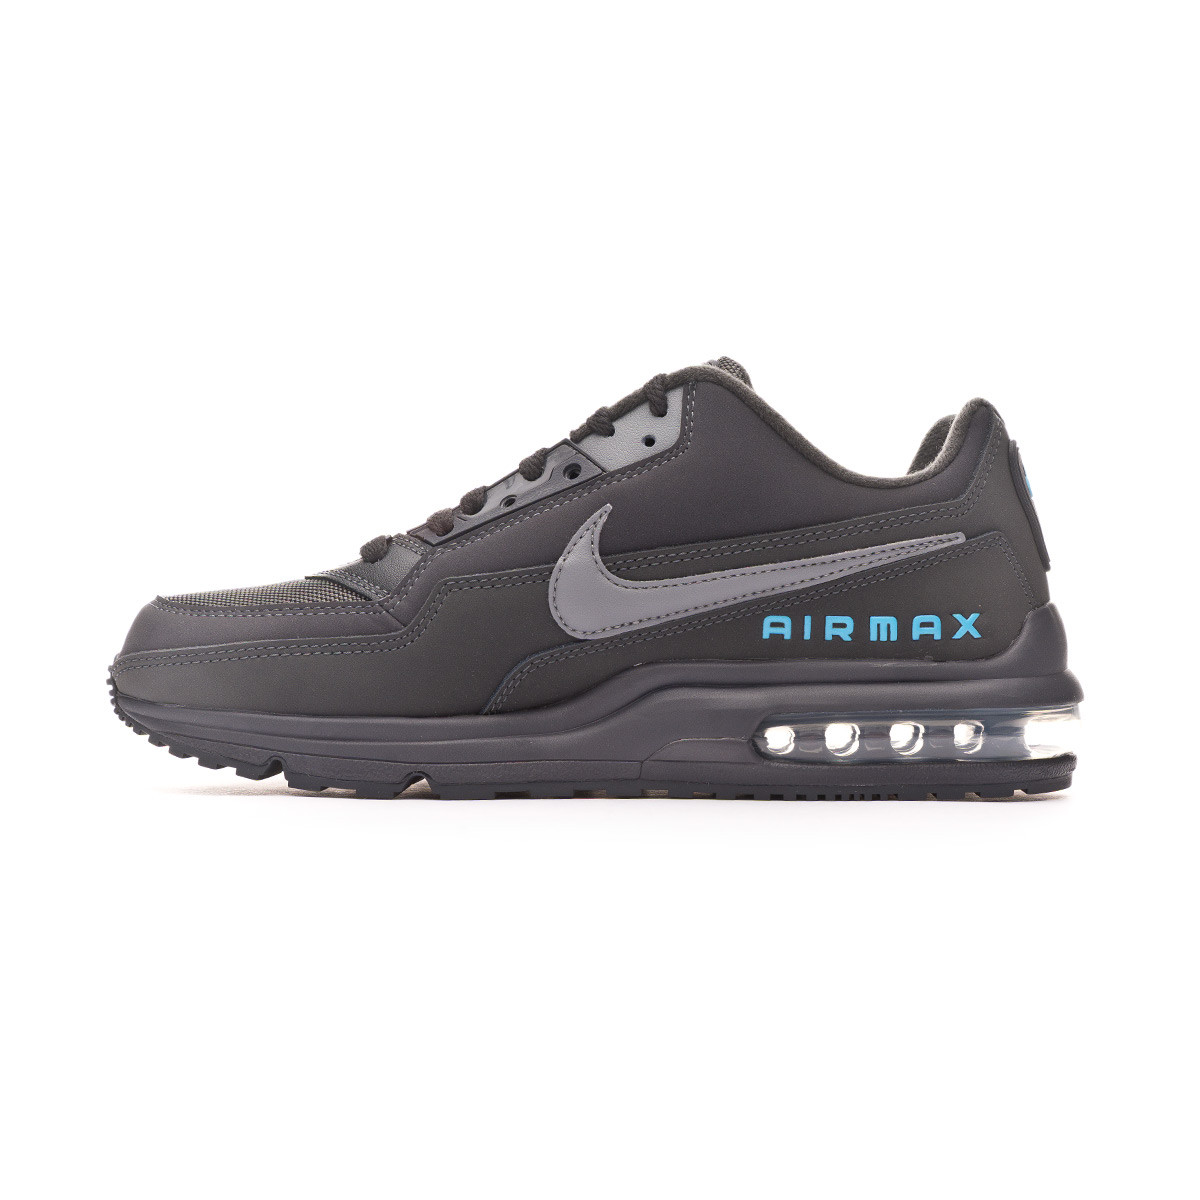 gobierno No haga retorta  Trainers Nike Air Max LTD III Anthracite-Cool grey-Light current blue -  Football store Fútbol Emotion